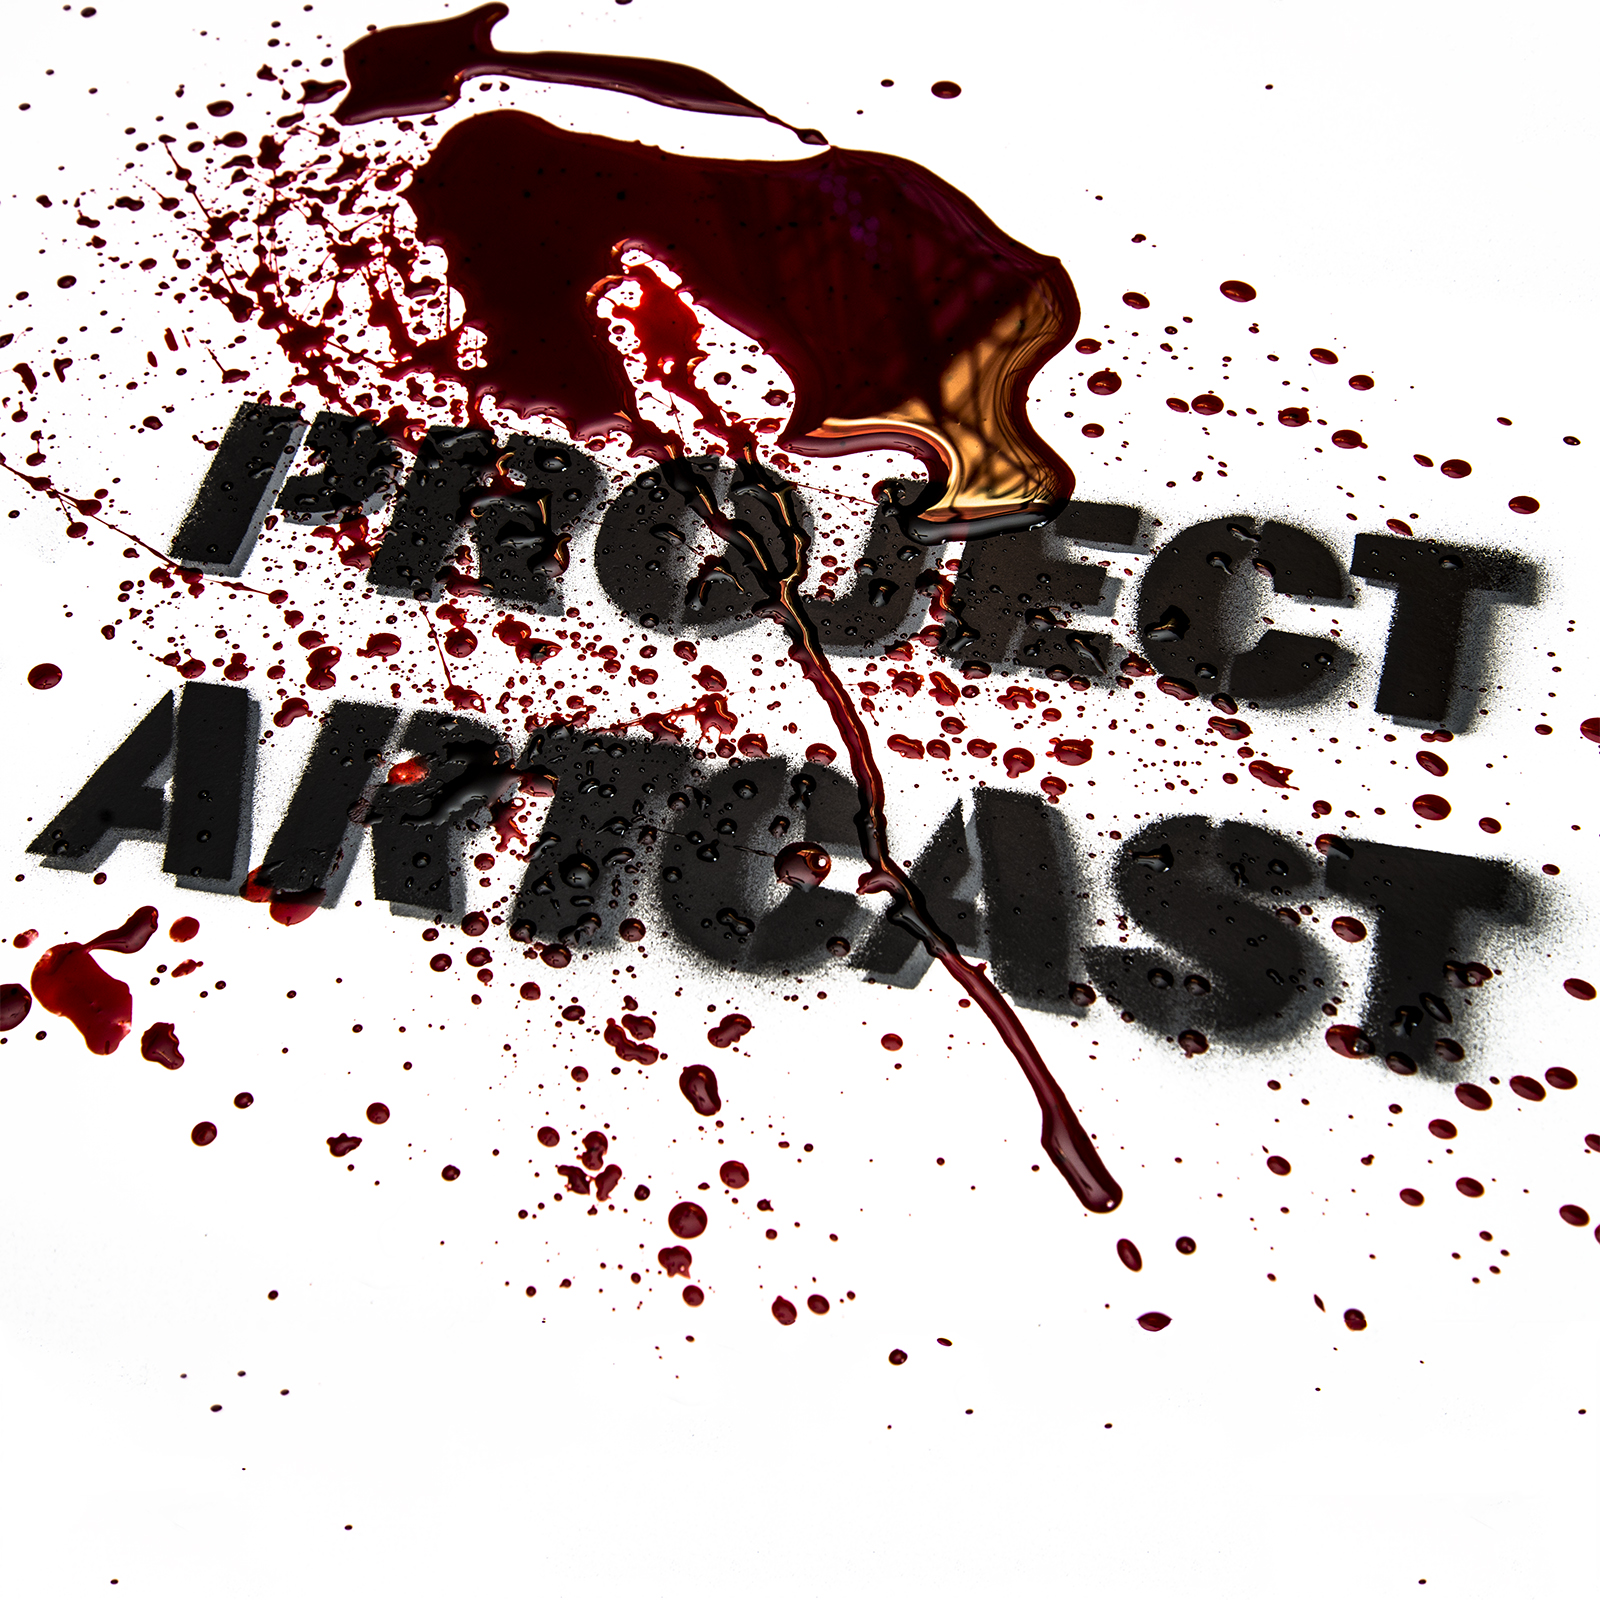 projectartblood